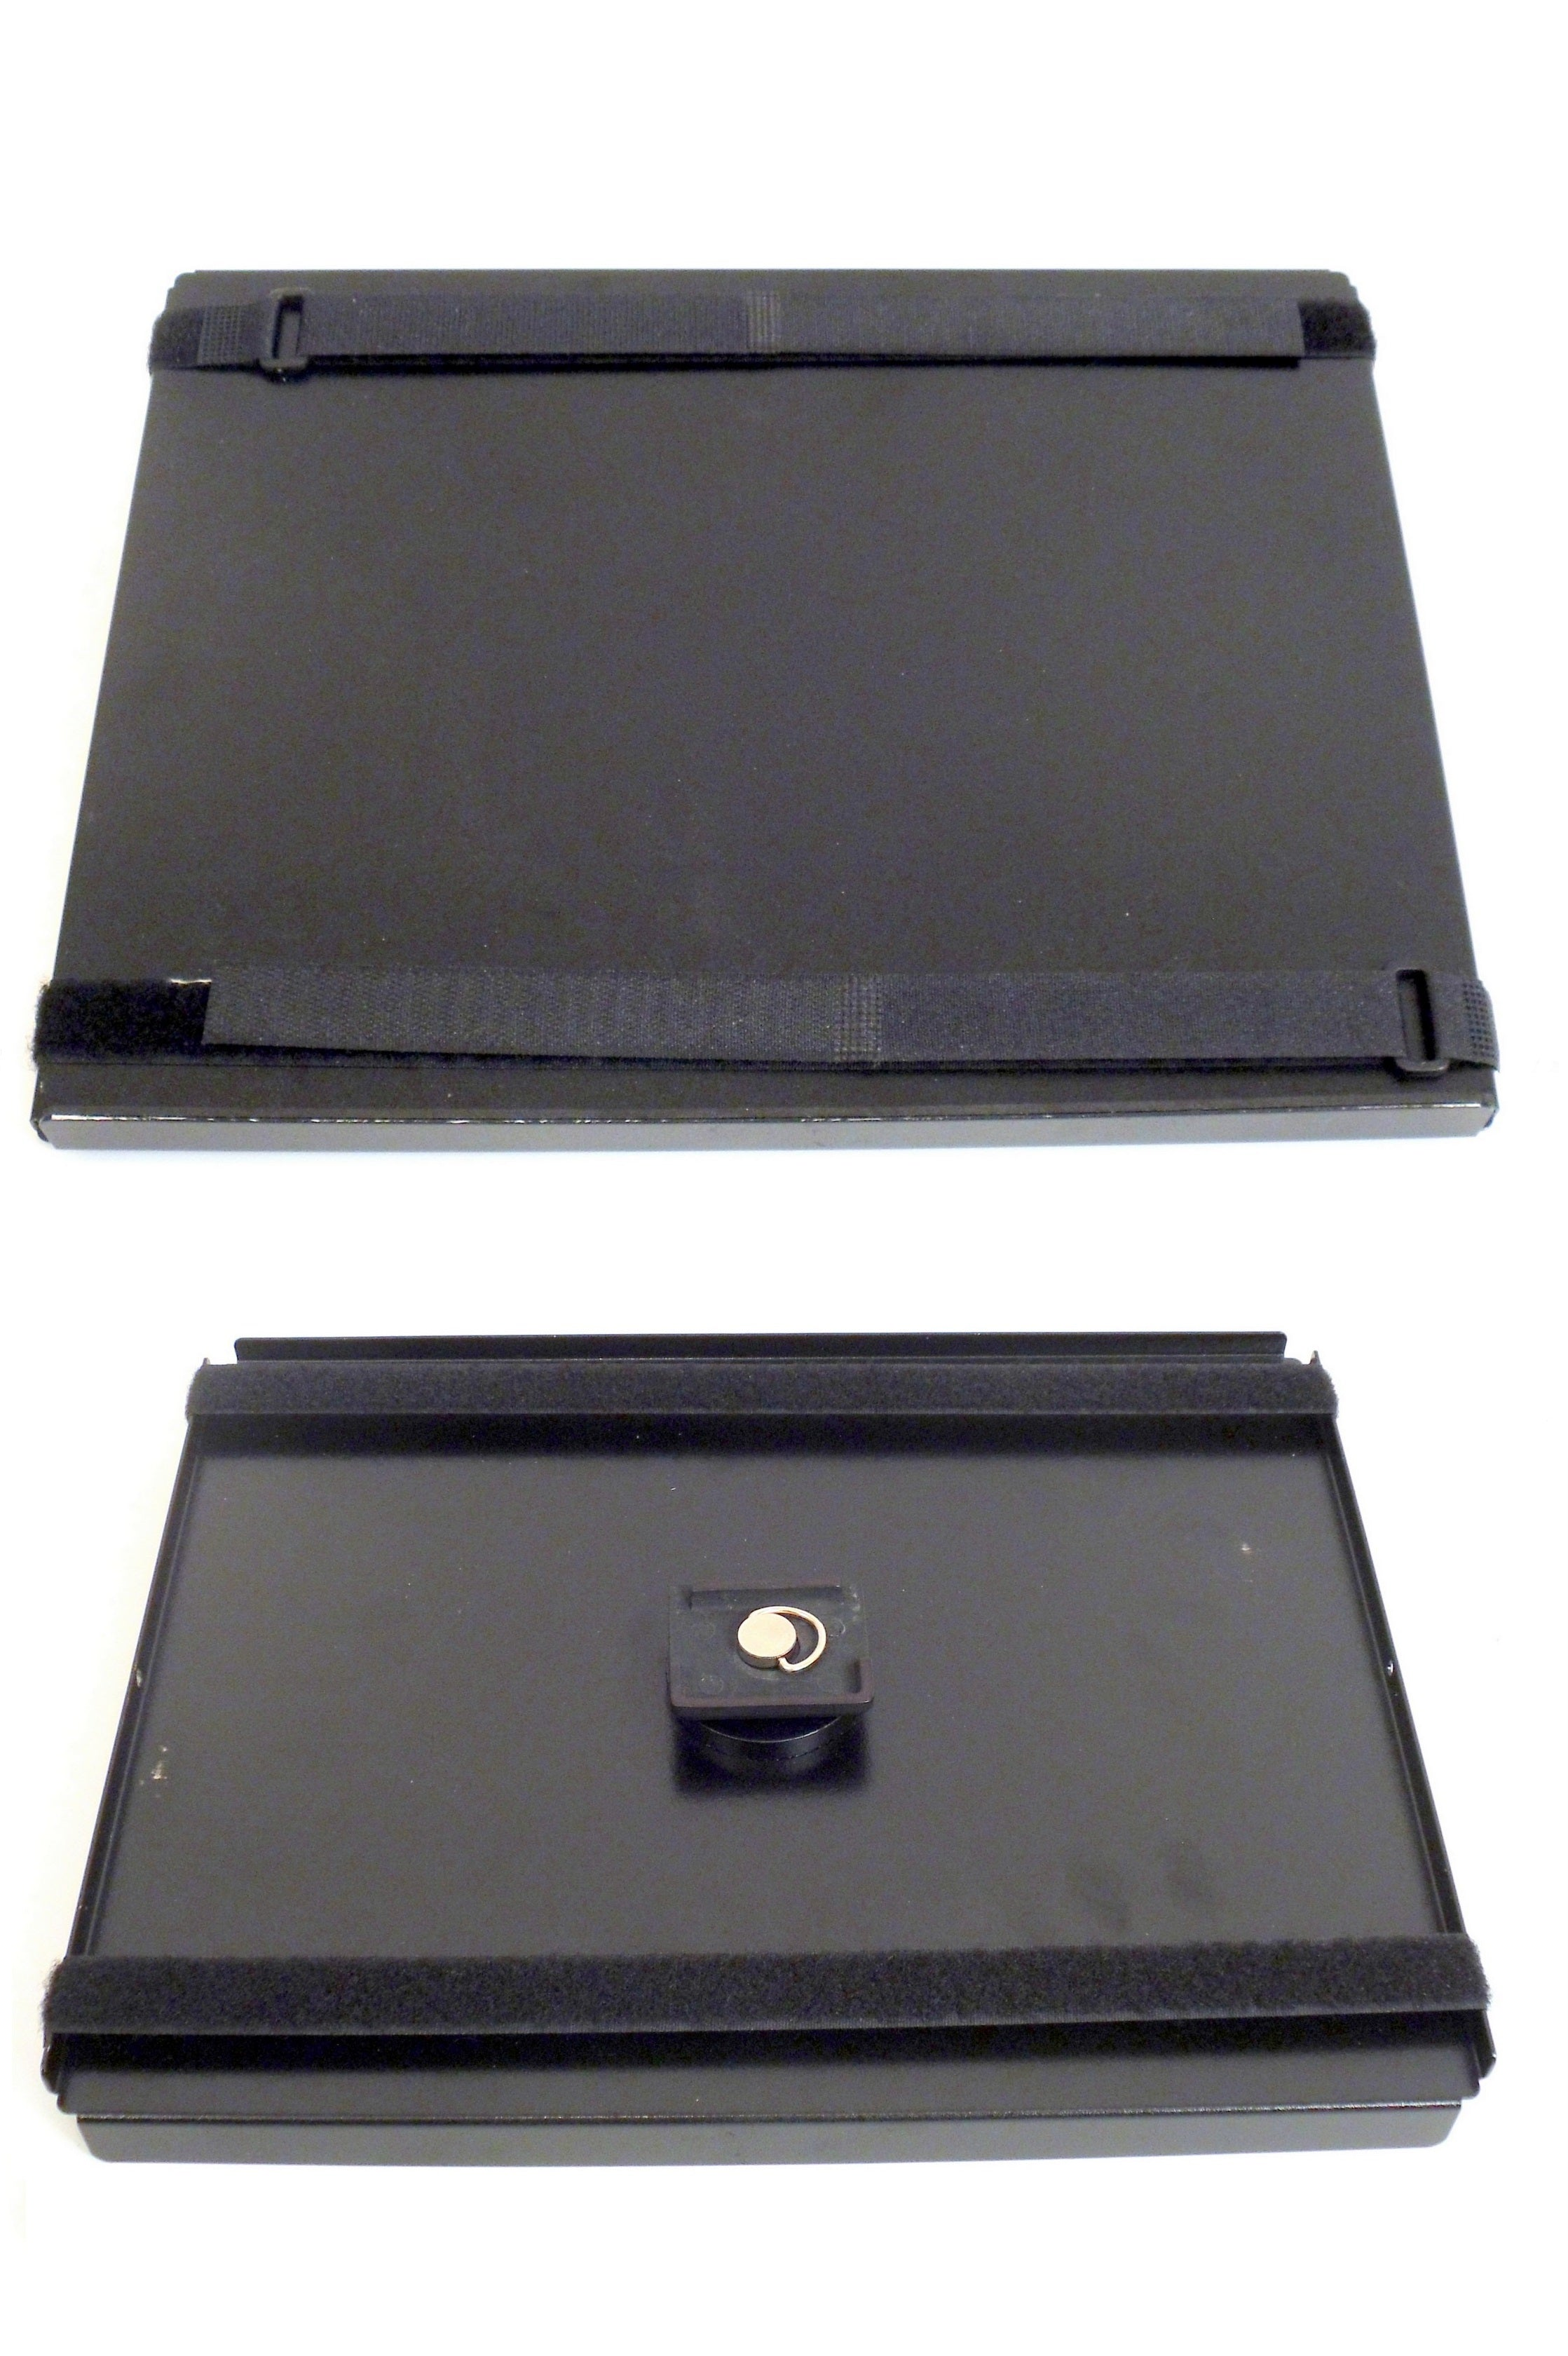 Robo Arm Multi-Use Black Aluminum Tray with Velcro Loop Straps for Laptop